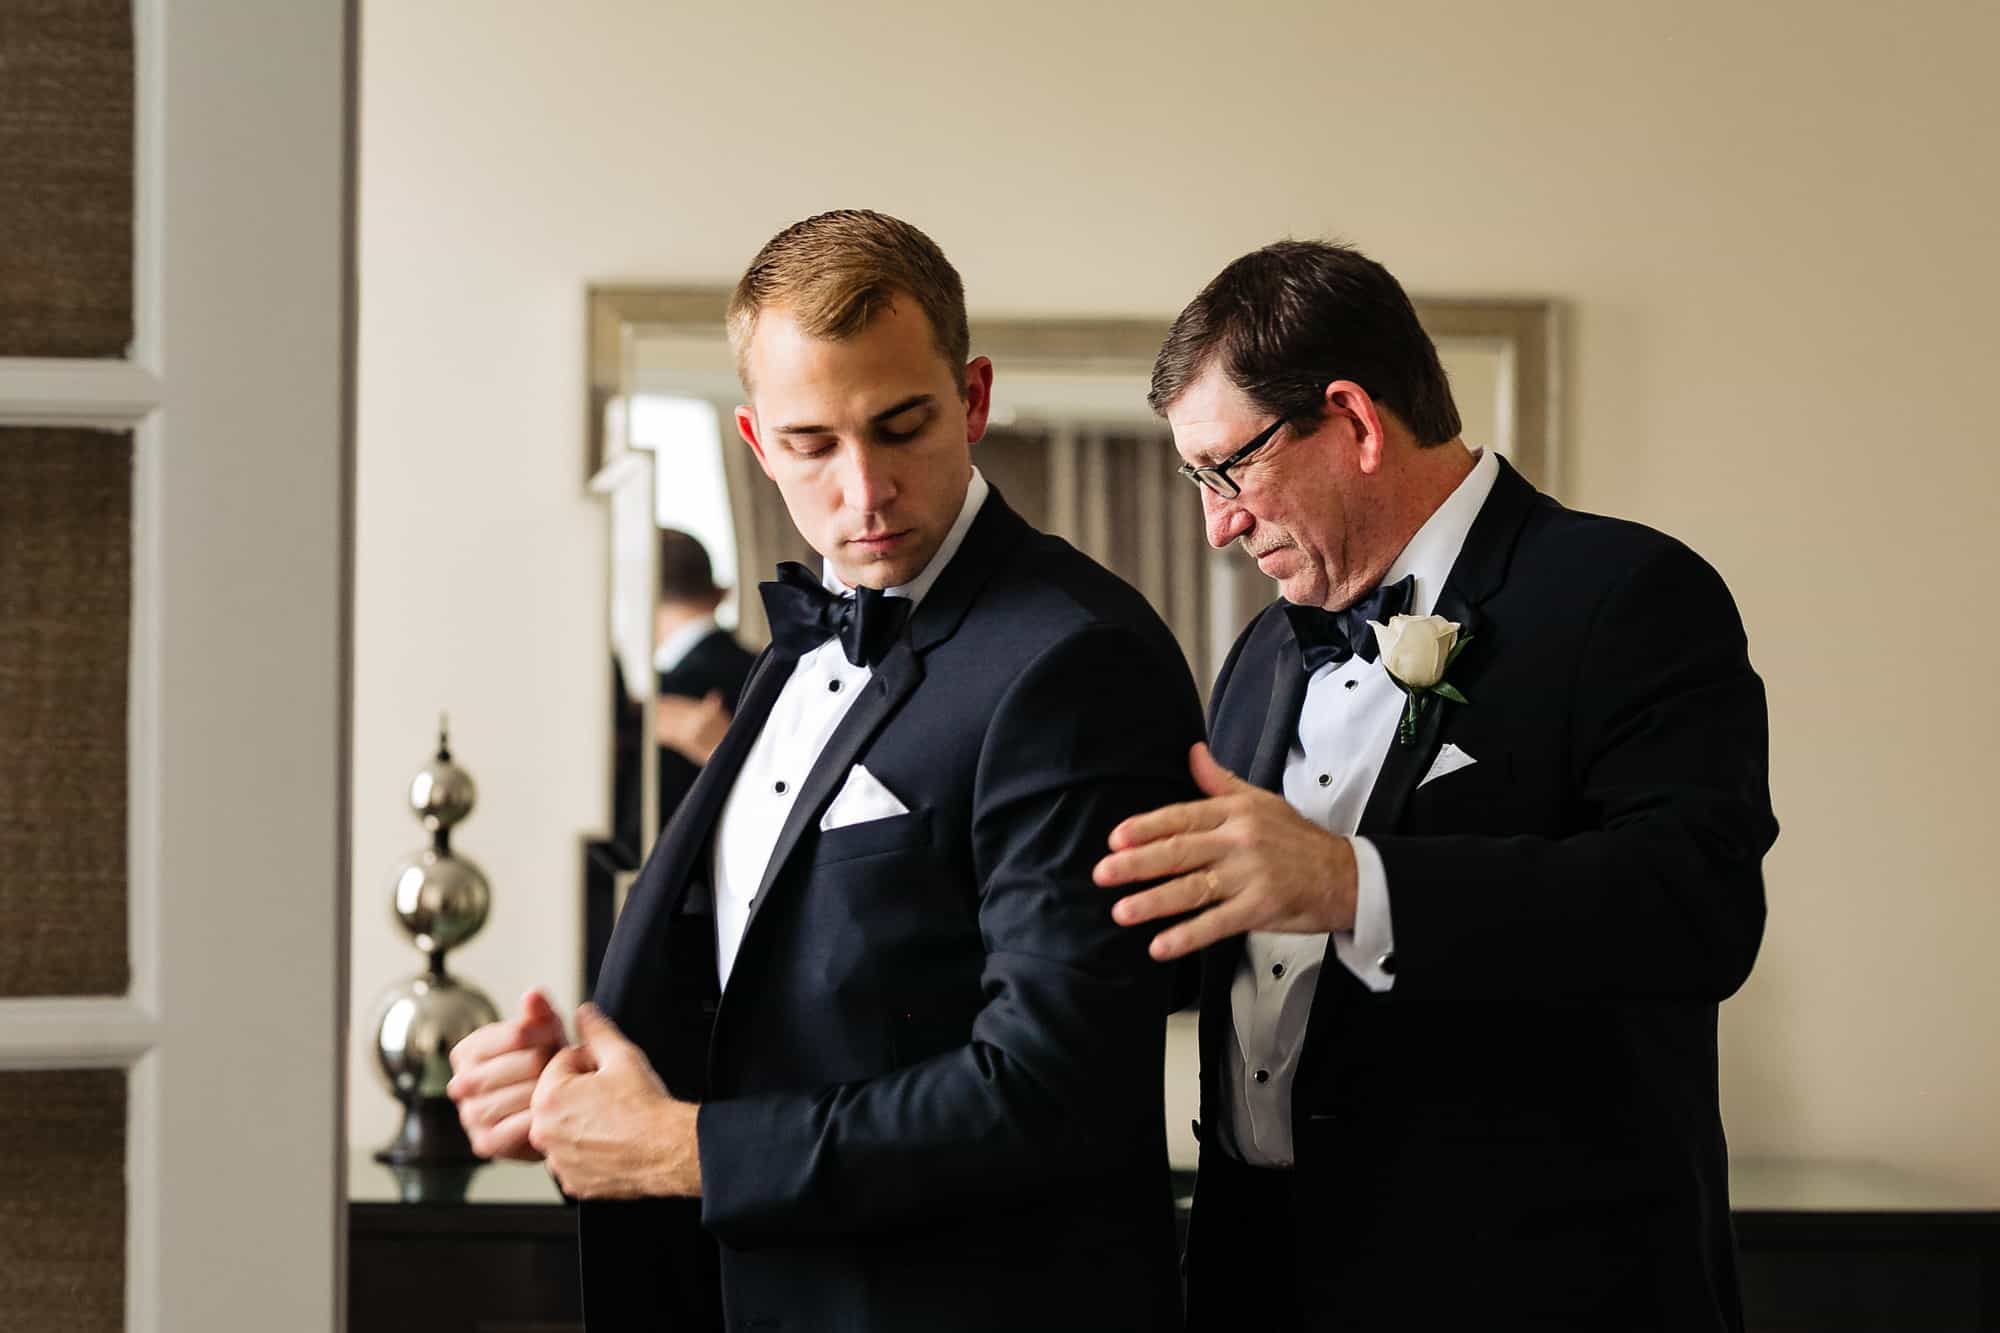 Ritz Carlton Philadelphia Wedding|grooms father helping groom put on suit jacket